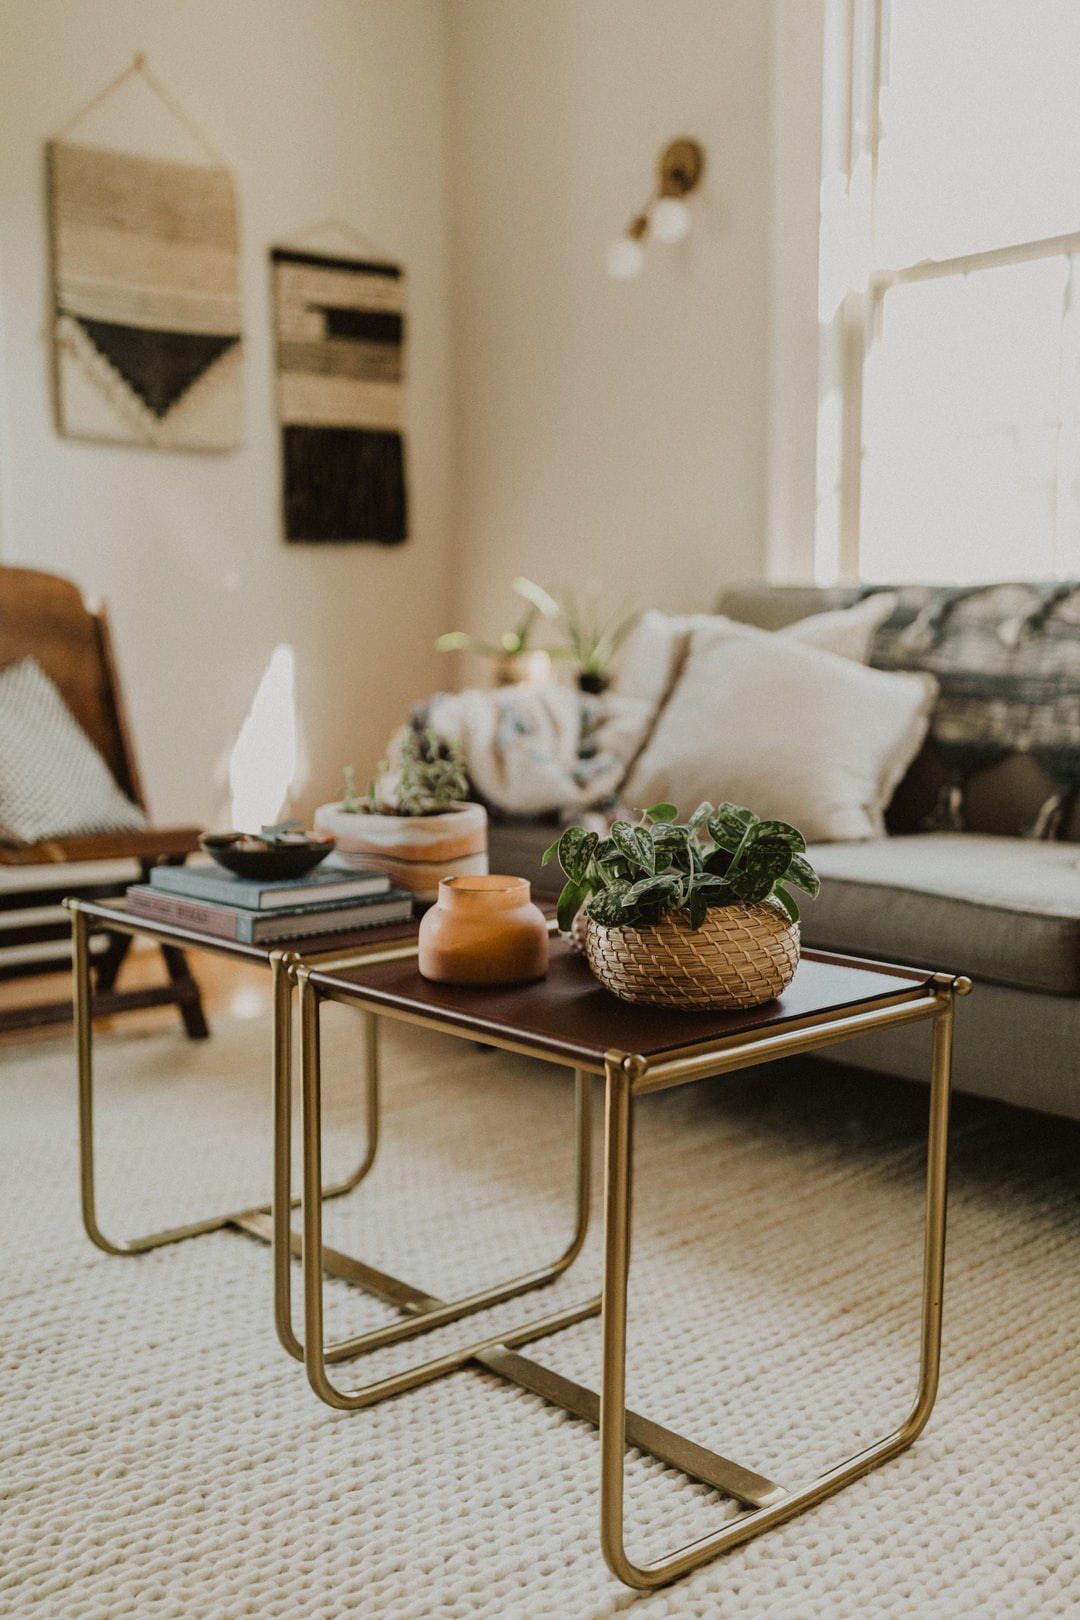 5 Tips For Styling Airbnbs And Attracting Guests